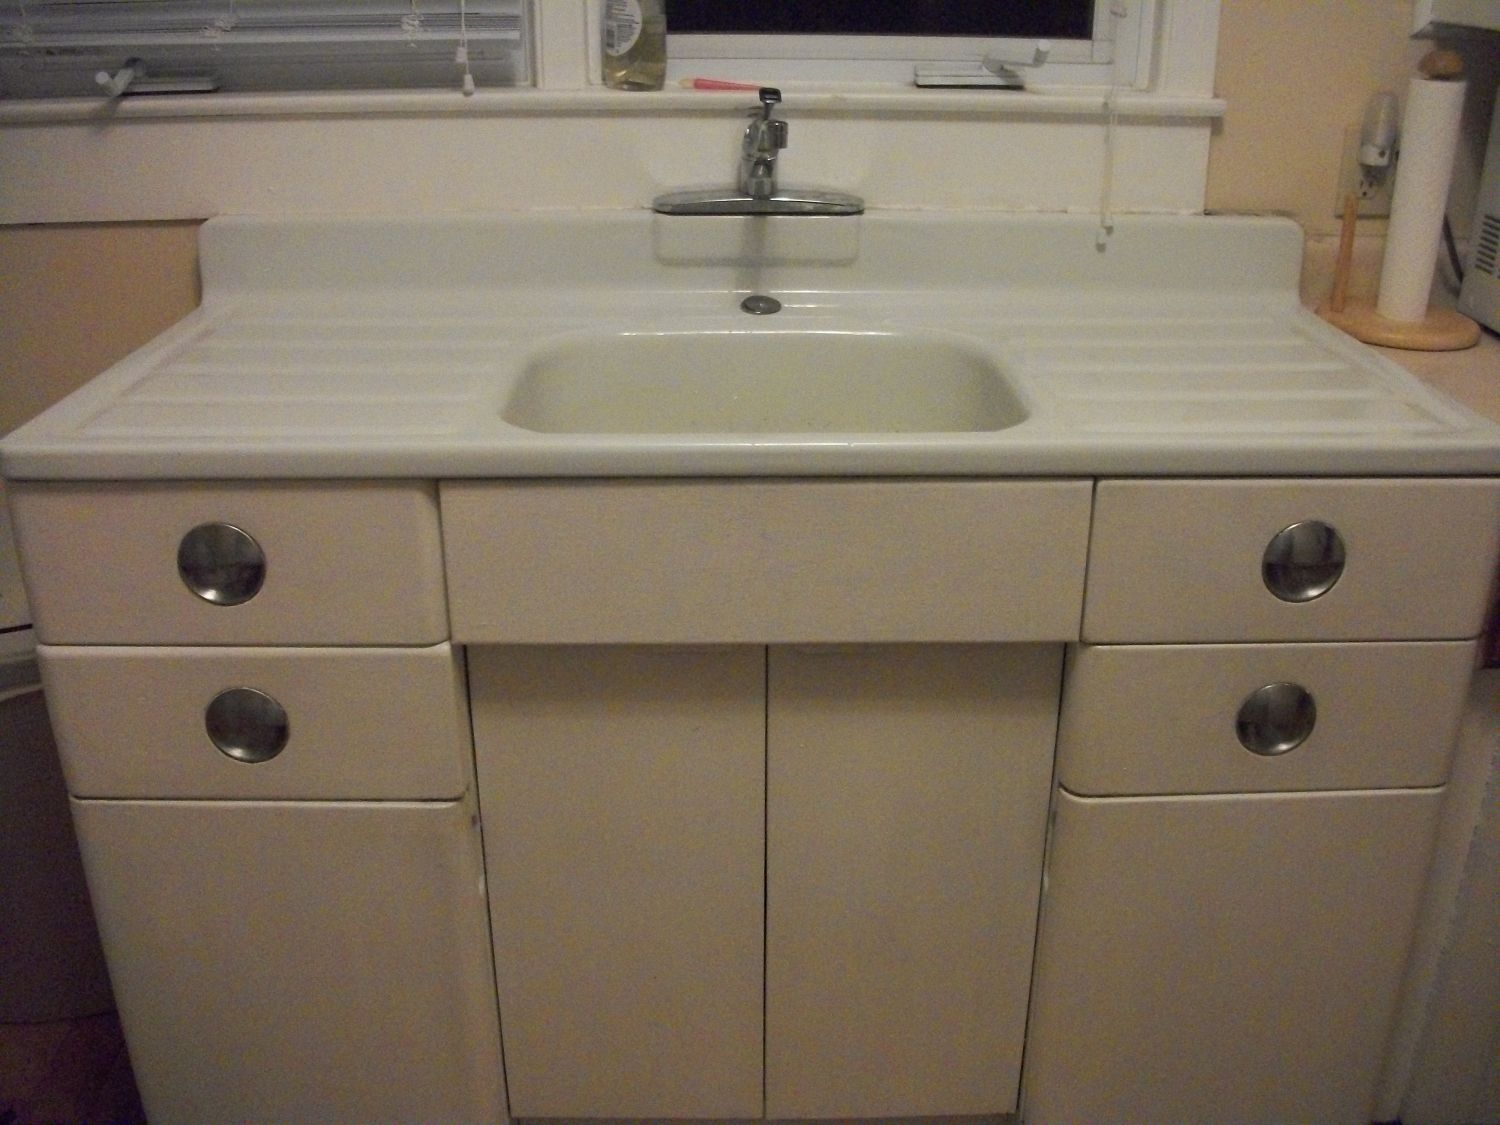 Metal Kitchen Sink Cabinet Unit Rustic Kitchen Decorating Ideas Check More At Http Www Metal Kitchen Cabinets Vintage Kitchen Sink Kitchen Sink Inspiration